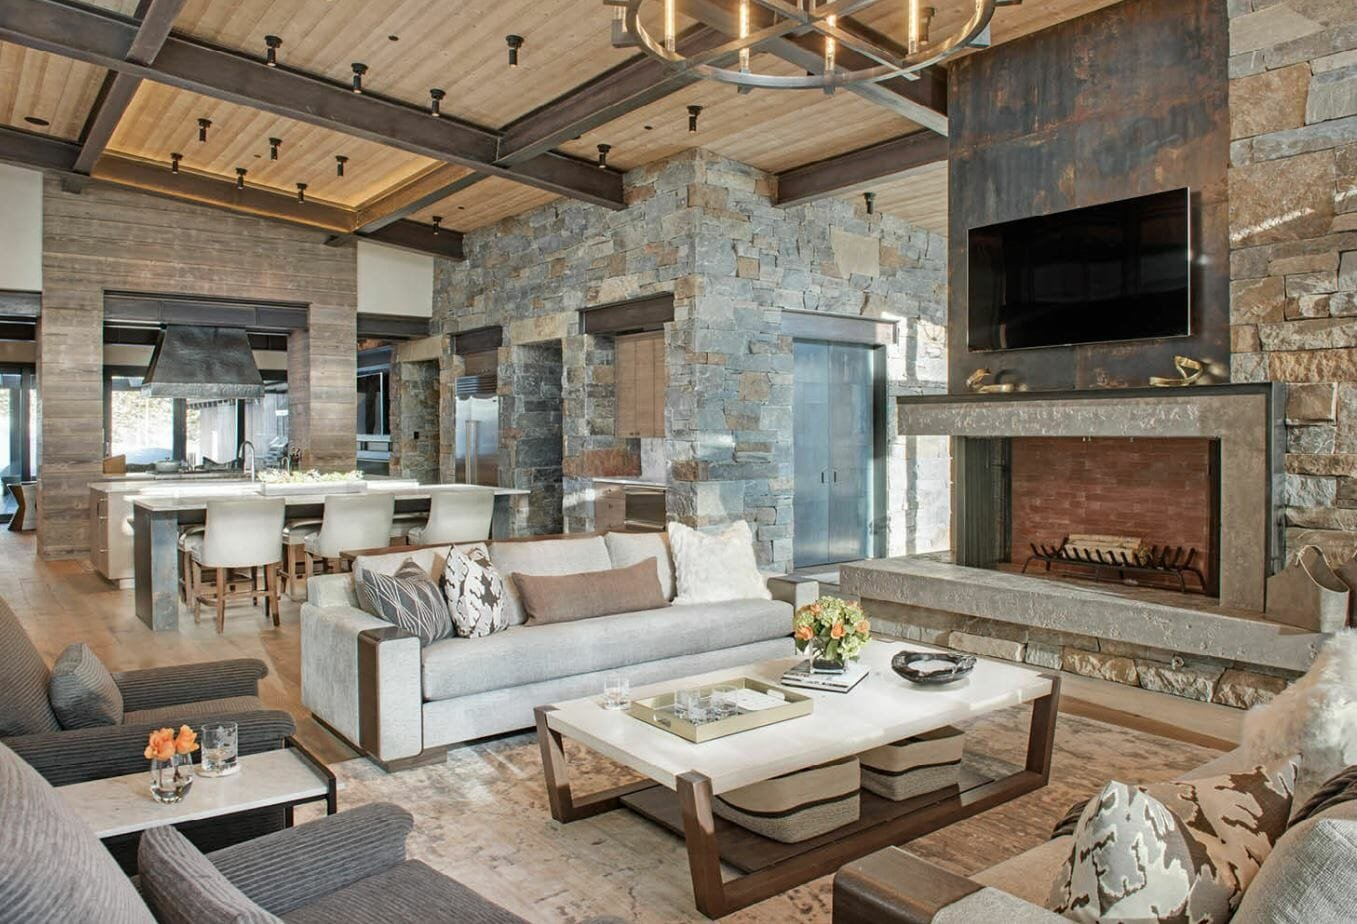 Creating A Rustic Living Room Decor: Modern Rustic Interior Design: 7 Best Tips To Create Your